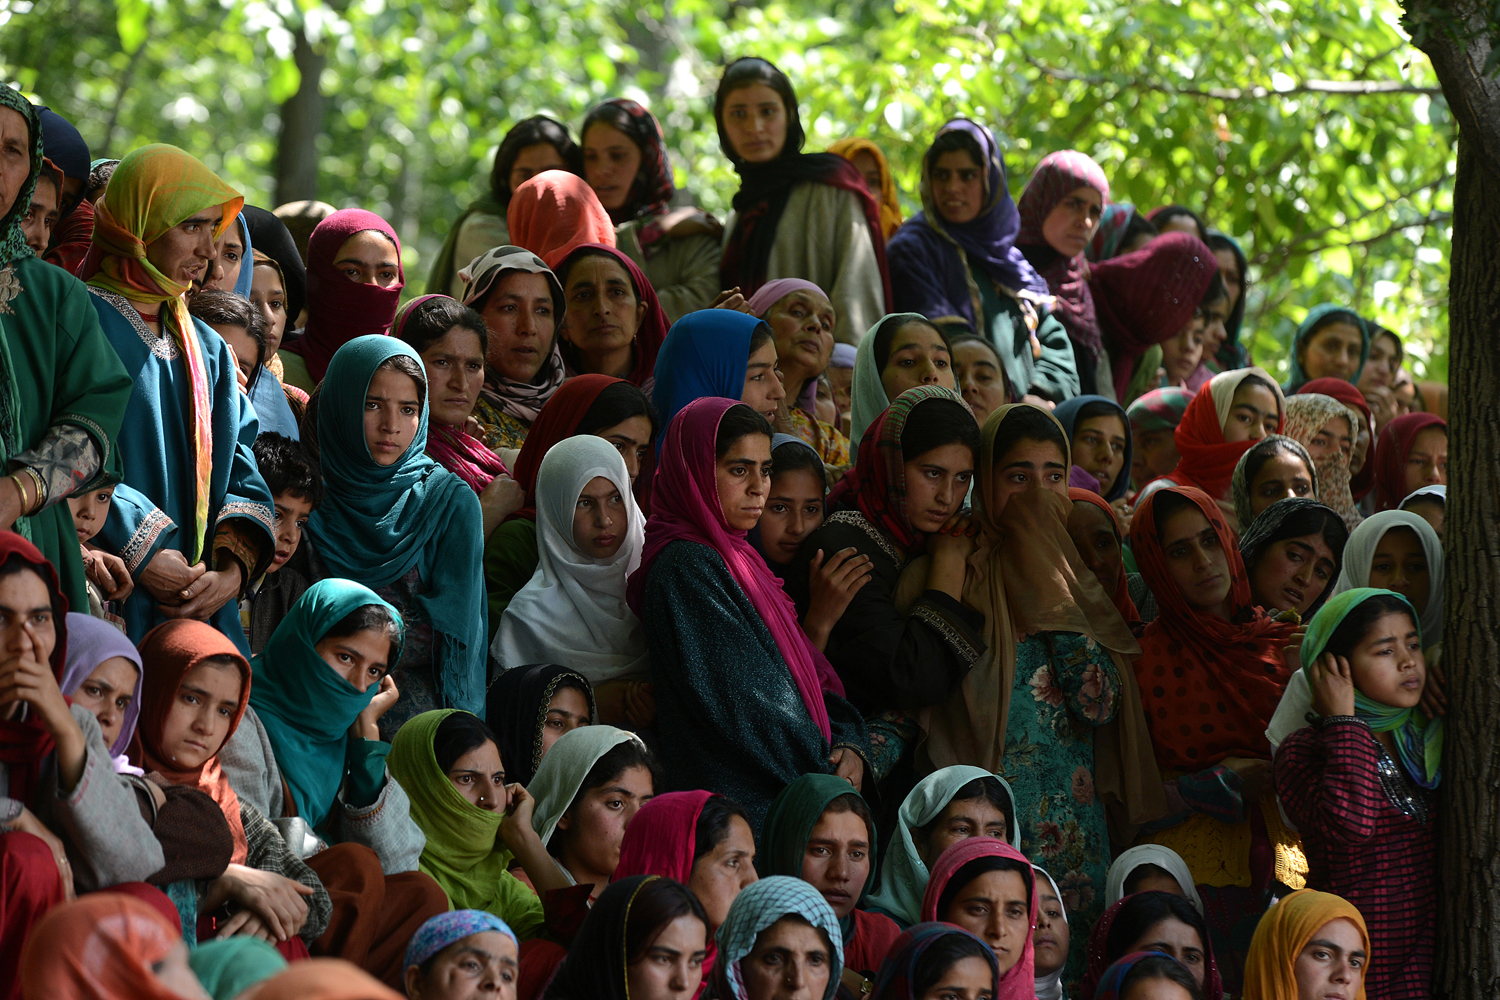 June 6, 2013. Kashmiri Muslim villagers watch the funeral of self styled divisional commander of Jaish-e-Mohammad (JEM), Altaf Baba alias Gazi Baba at Algar-Kandi in Pulwama district, some 55 kms south of Srinagar.